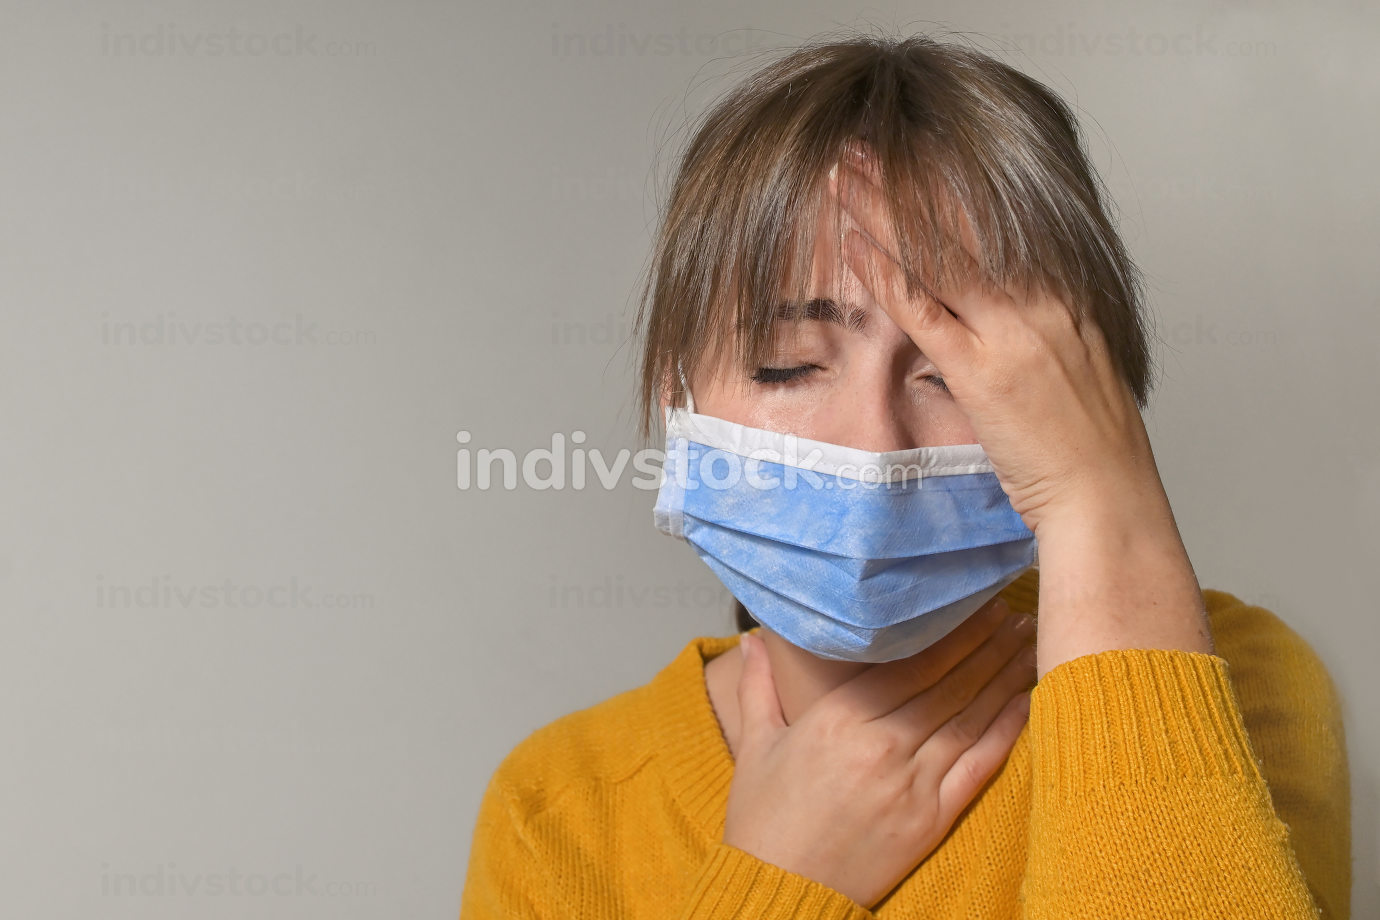 Woman Wearing Medical Mask and Throat Pain